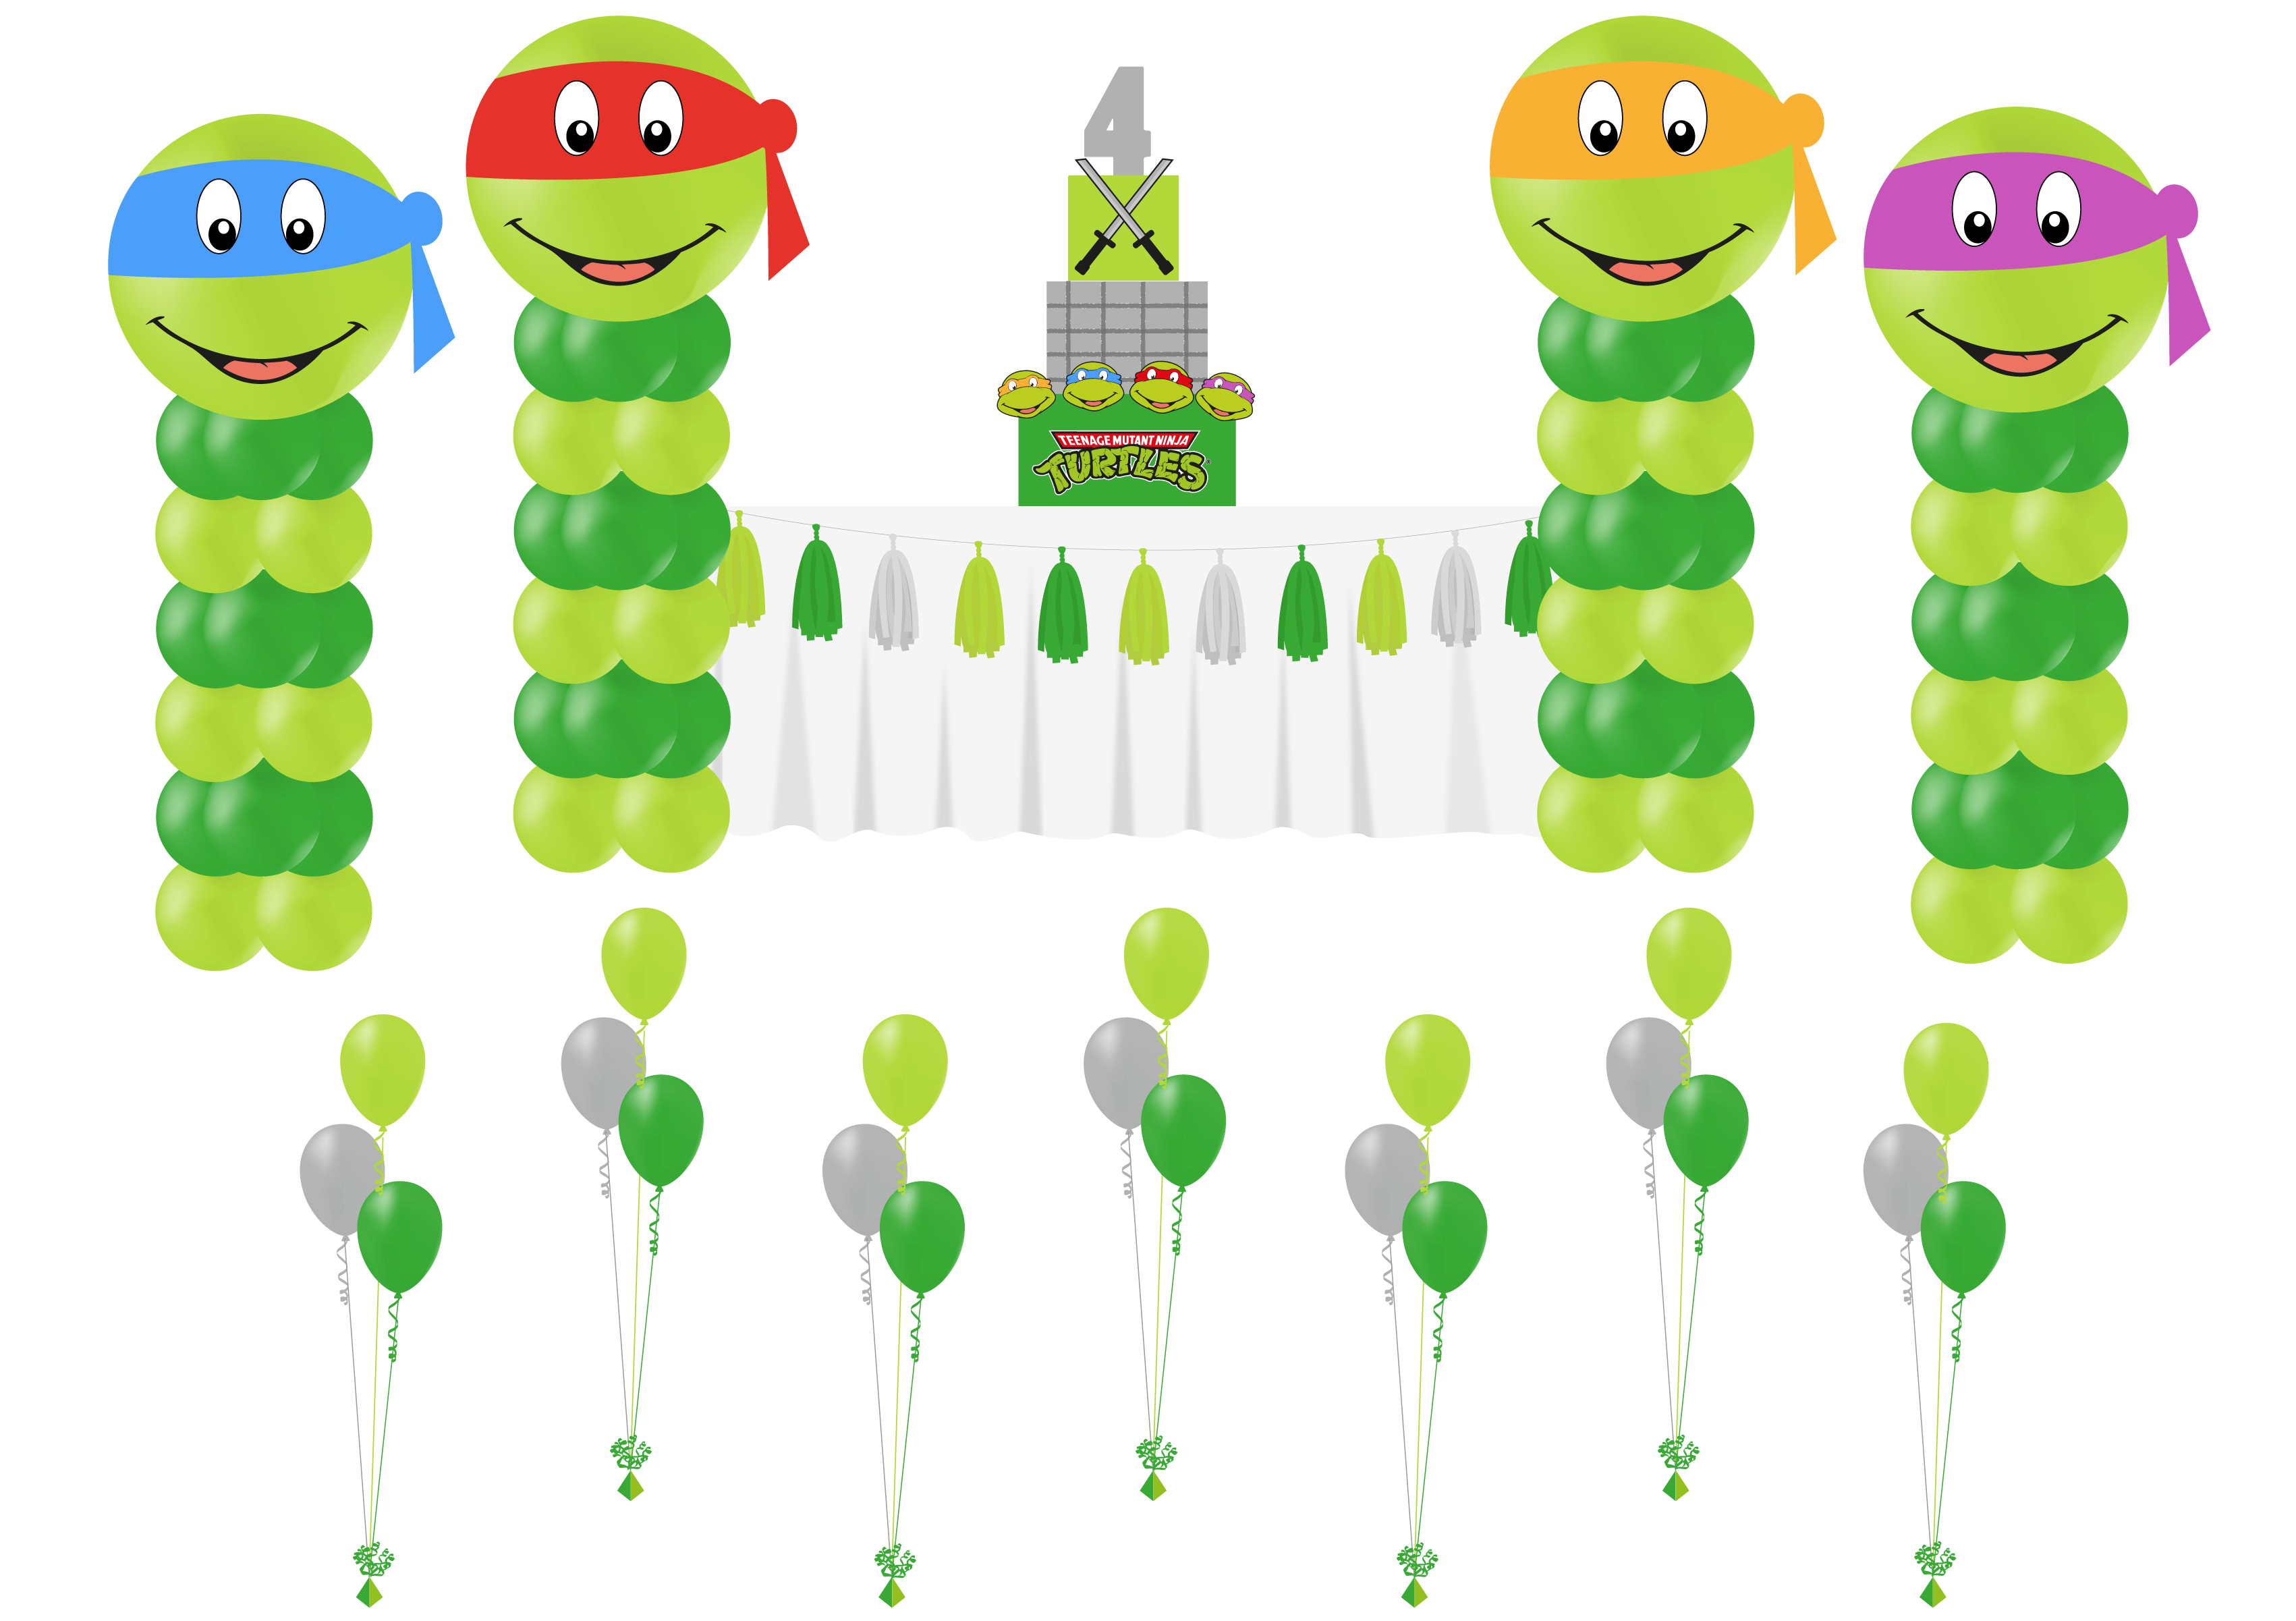 TMNT kids party balloons